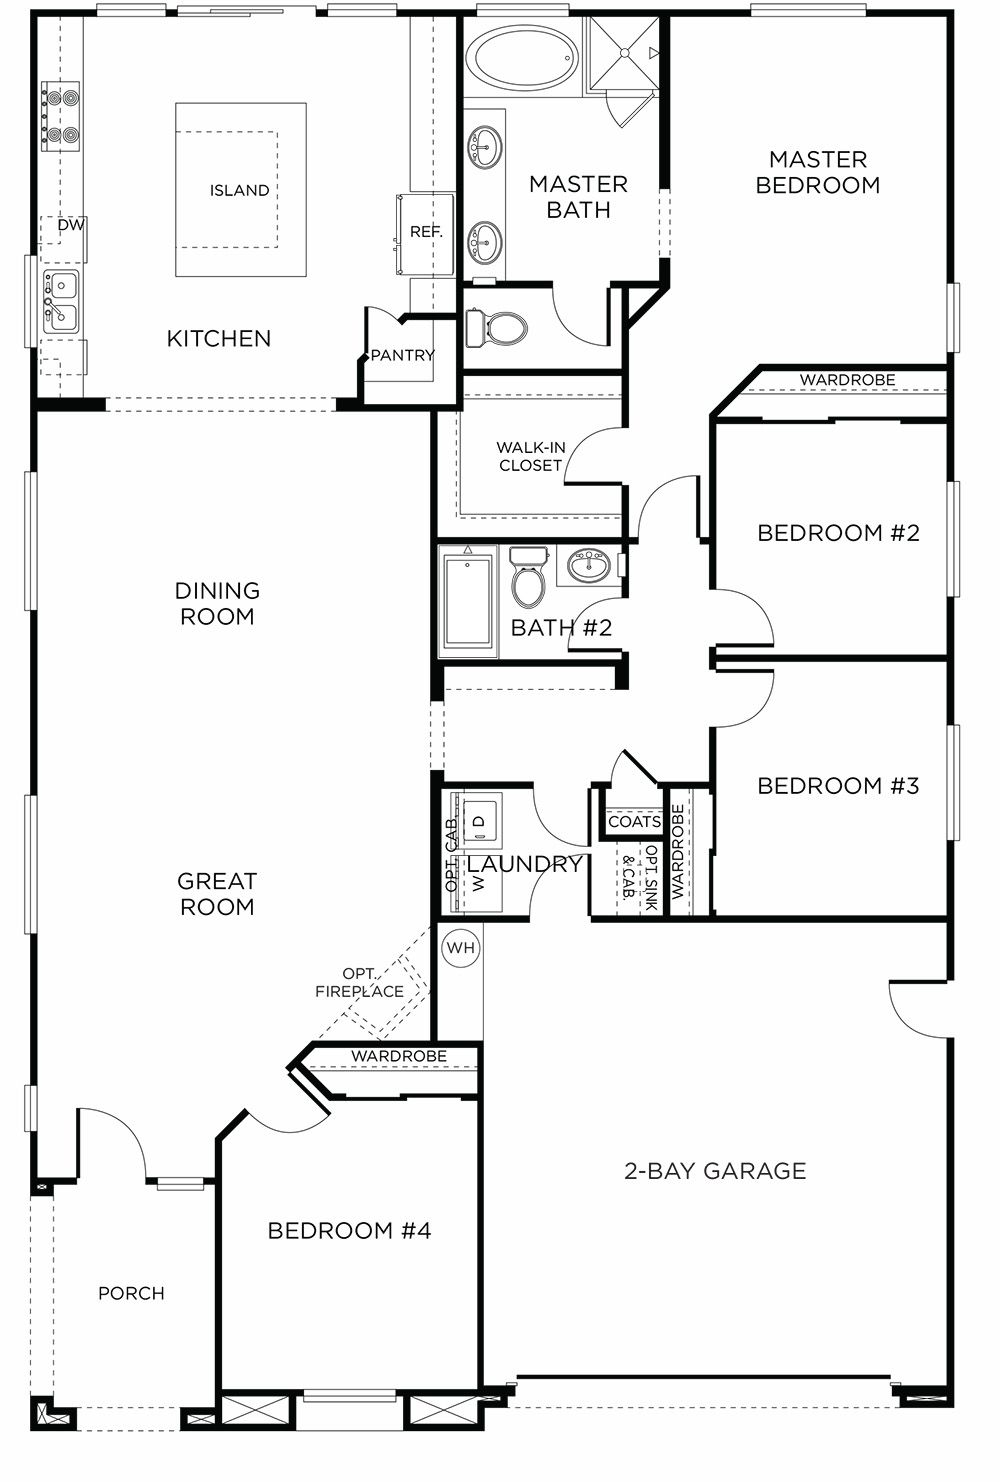 Modern One Story House Plan With Lots Of Natural Light: New Single-story Plan: Fair Oaks Ranch Plan 5A #green